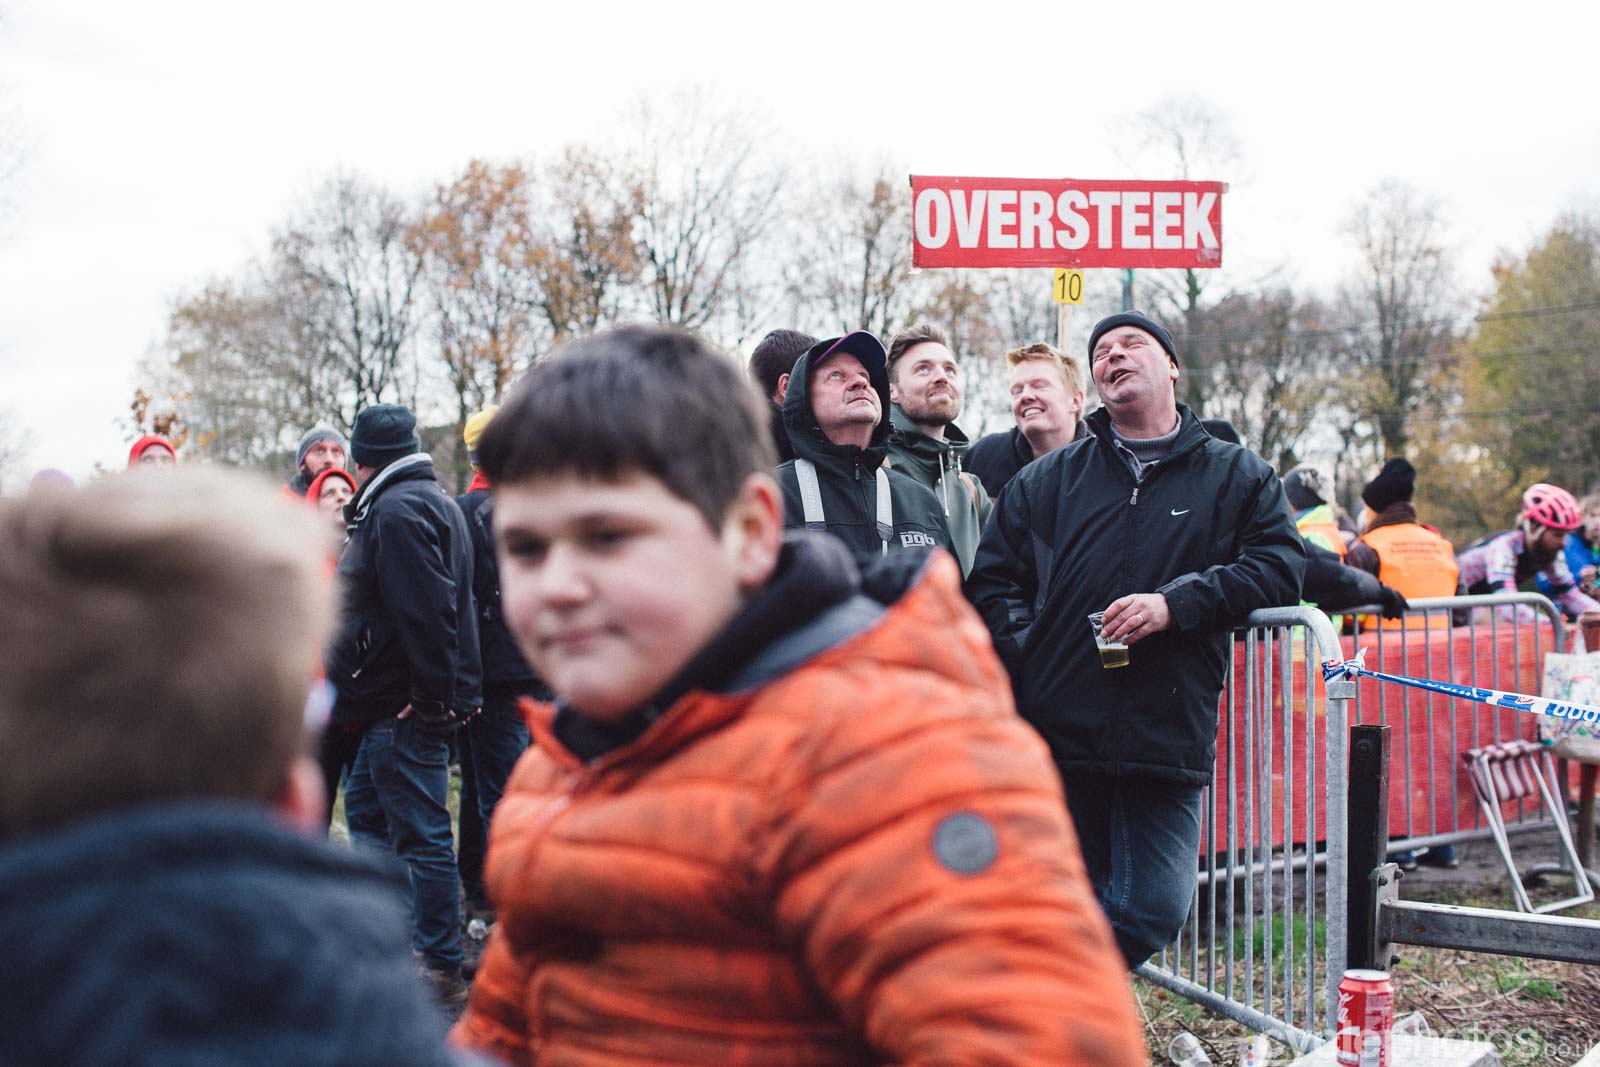 2015-cyclephotos-cyclocross-essen-154923-spectators